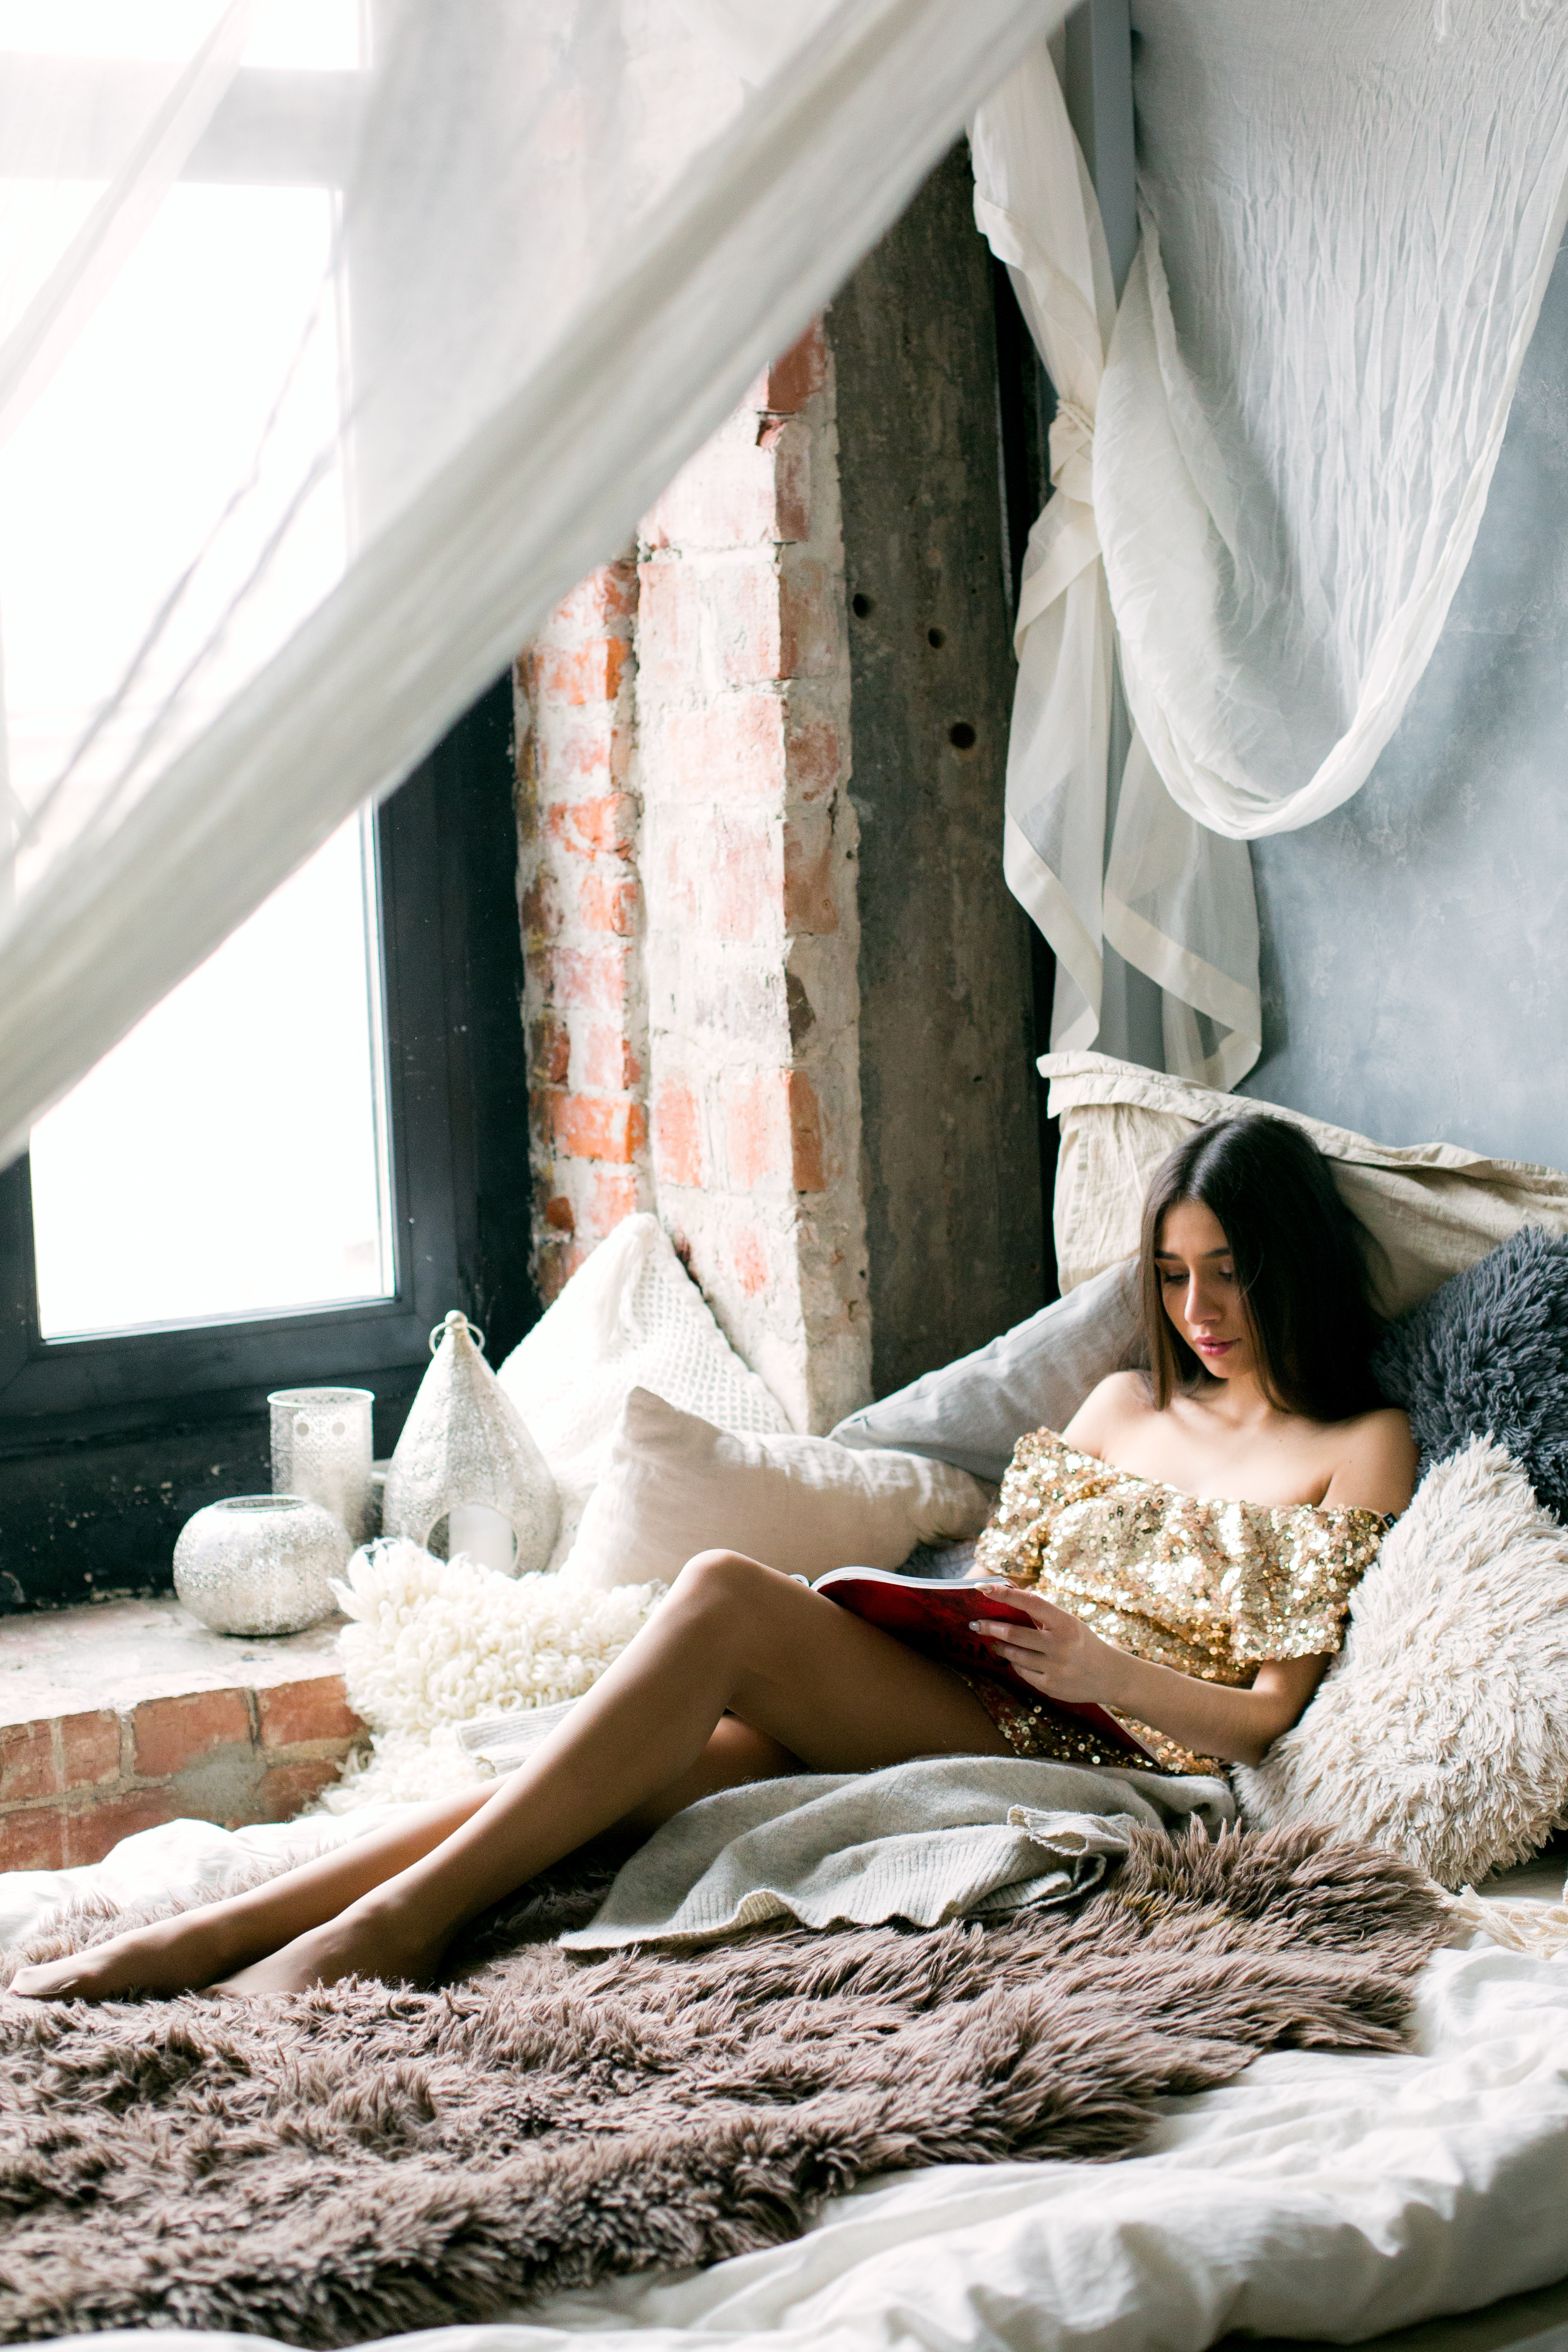 Woman Reading a Book in the Bed, Model, Young, Woman, Window, HQ Photo